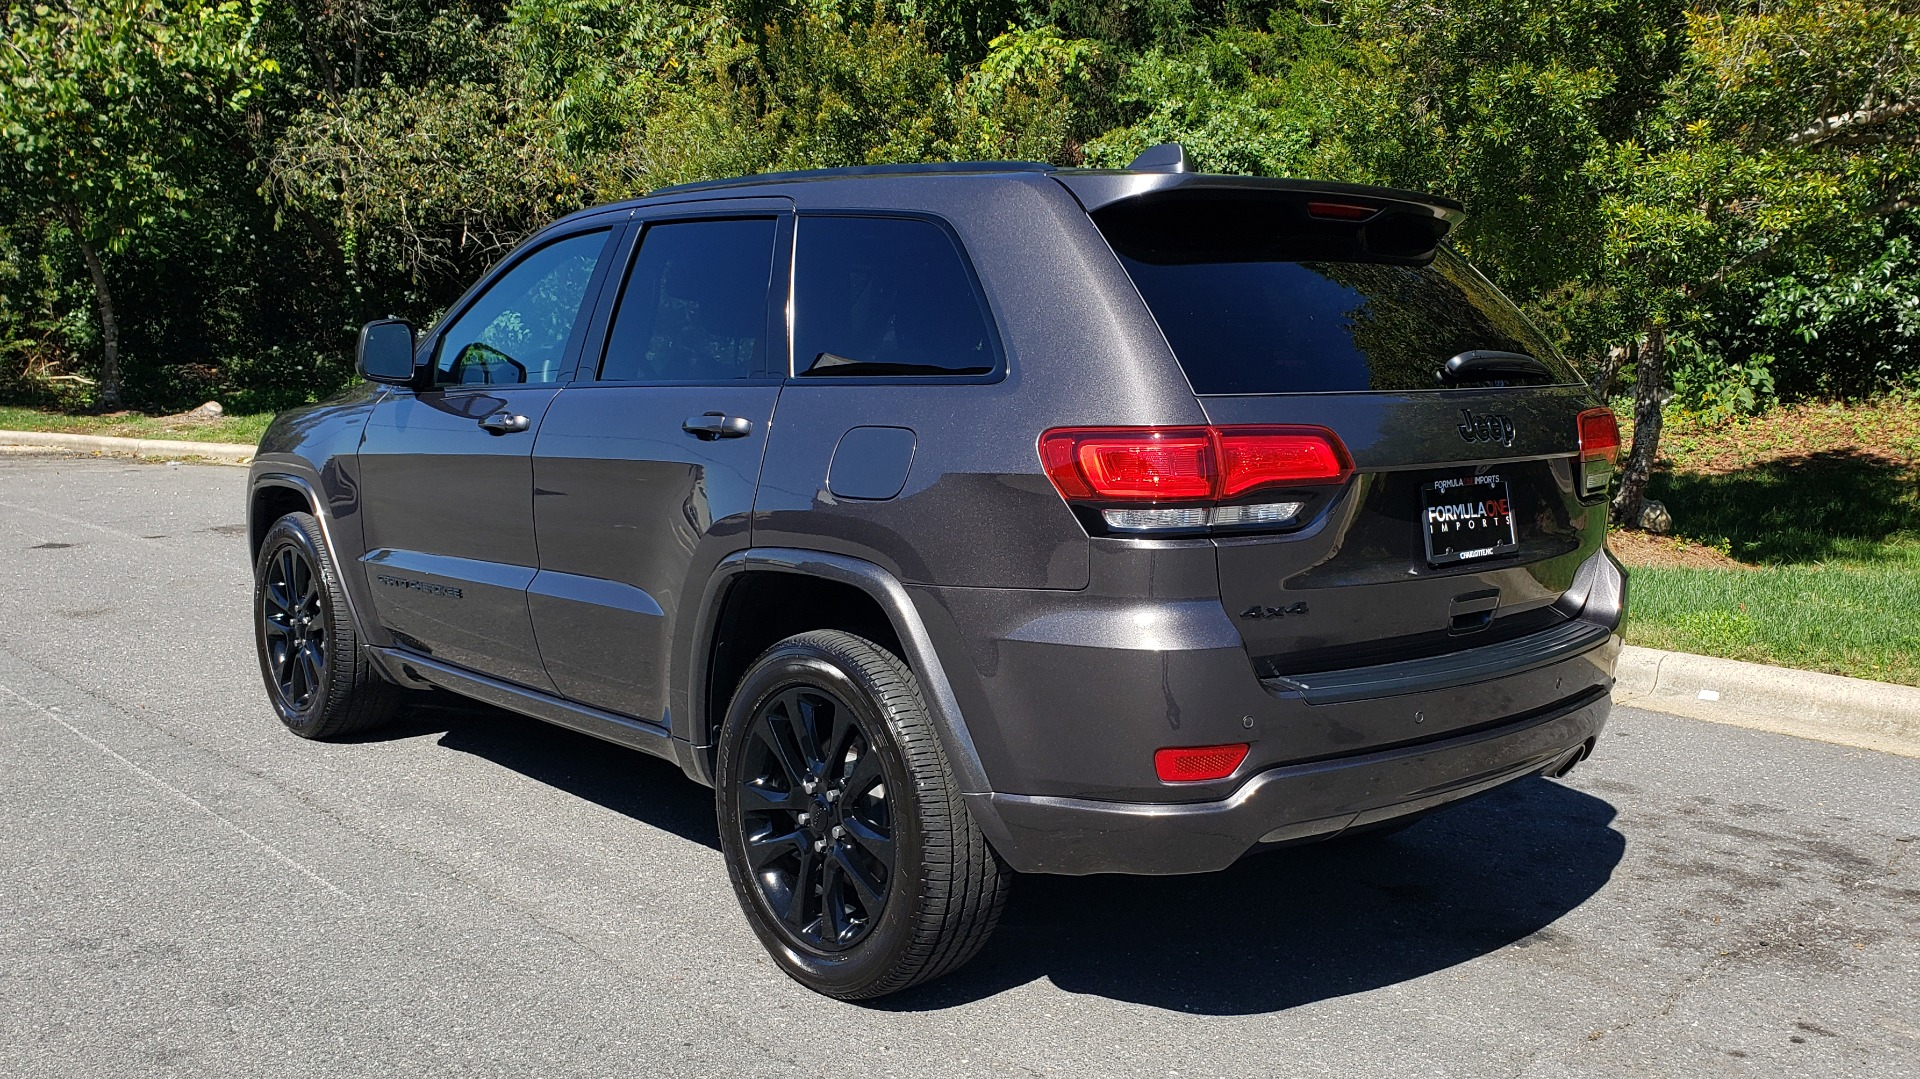 Used 2019 Jeep GRAND CHEROKEE ALTITUDE 4X4 / NAV / WIFI / SUNROOF / REARVIEW for sale $34,995 at Formula Imports in Charlotte NC 28227 3